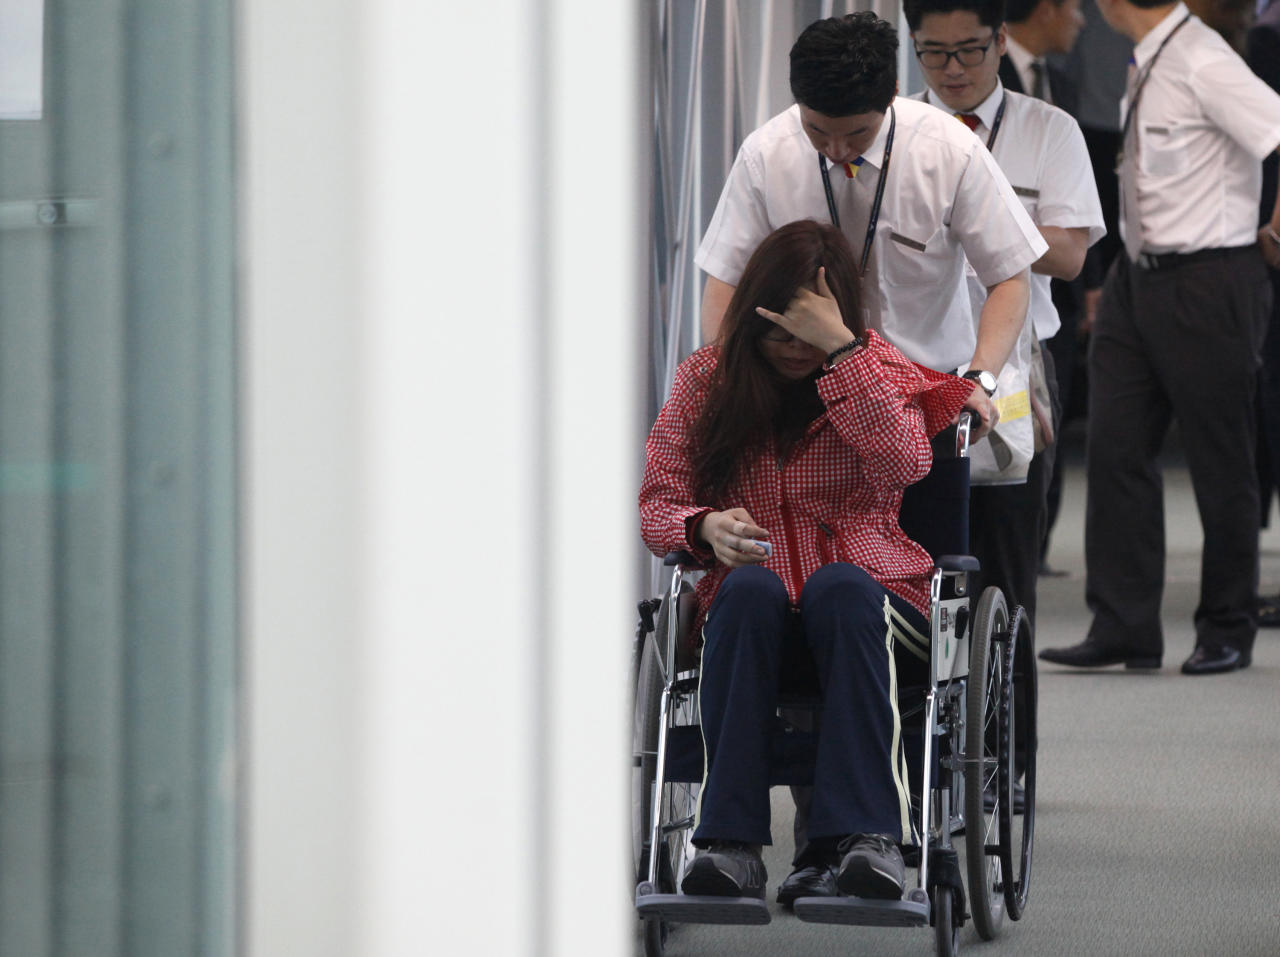 """A passenger of Asiana flight 214 arrives at the Incheon Airport in Incheon, west of Seoul Monday, July 8, 2013. Officials investigating a jetliner crash in San Francisco have determined that Asiana Airlines Flight 214 was traveling """"significantly below"""" its target speed as it approached the airport and that the crew tried to abort the landing just before it smashed onto the runway. (AP Photo/Kim Hong-Ji, Pool)"""